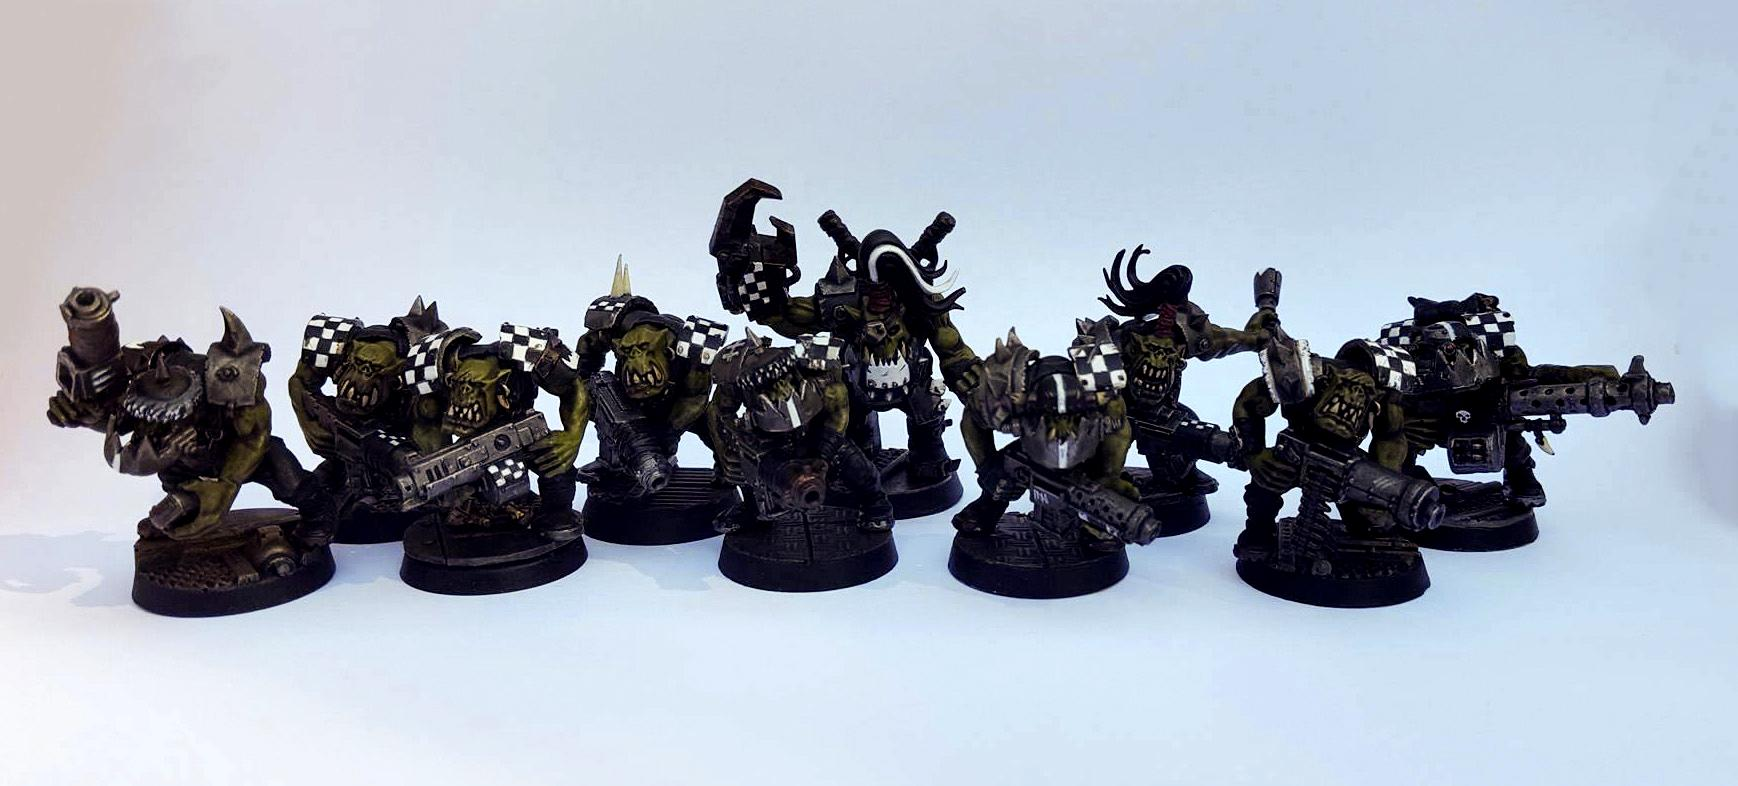 'ard Boys, Armor, Battle-worn, Checks, Damage, Dusty, Goff, Goffs, Orks, Realistic, Rusty, Shoota Boyz, Shootas